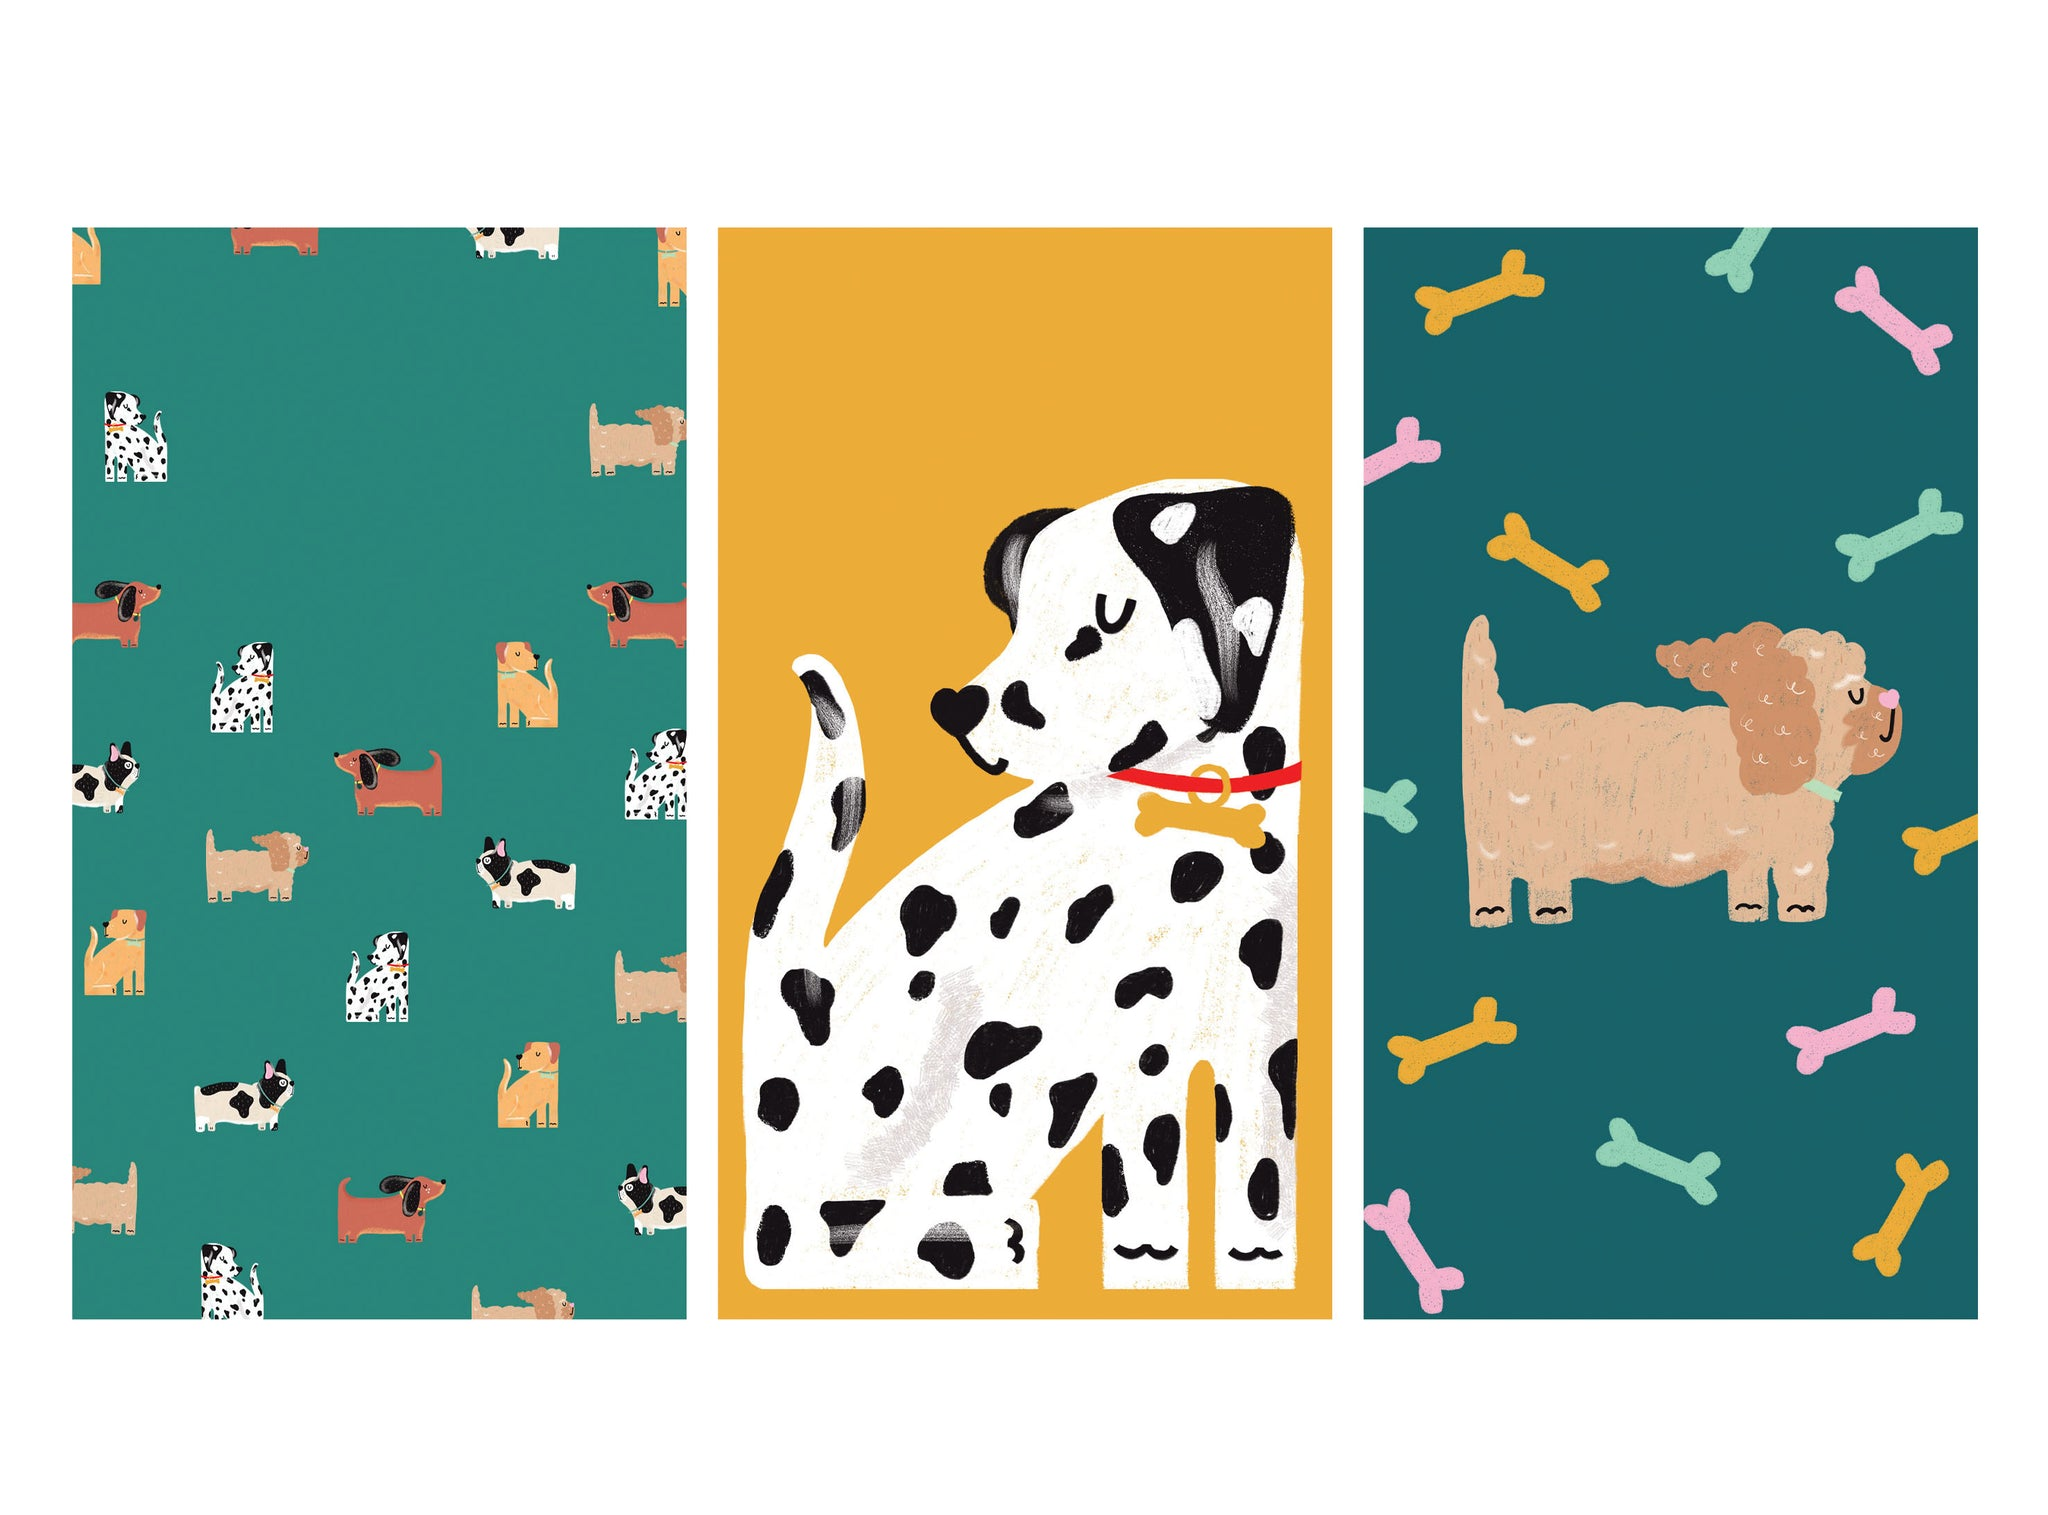 Colourful and cute free HD illustrated dog wallpapers for phone | Raspberry Blossom